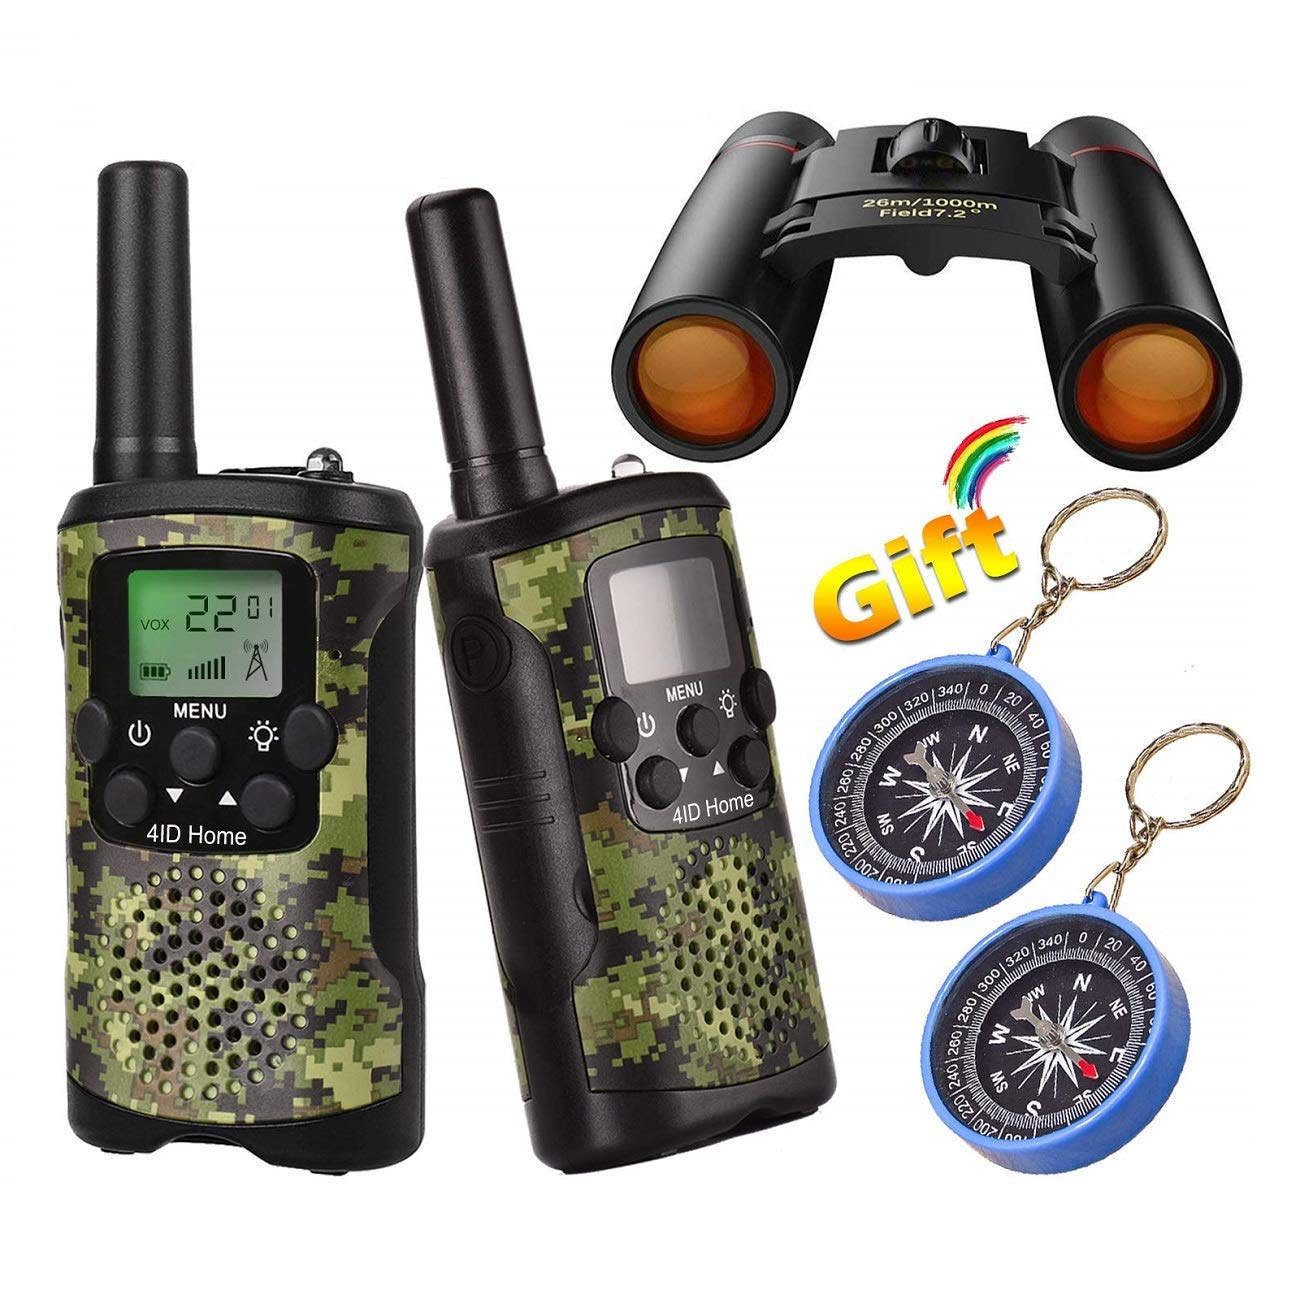 Kids Walkie Talkies Binoculars Toys - Mini Binocular Walkie Talkies for Kids Toy Birthday Gift for 4-10 Year Old Boys and Girls Fit Games, Adventure and Camping. Compass Included